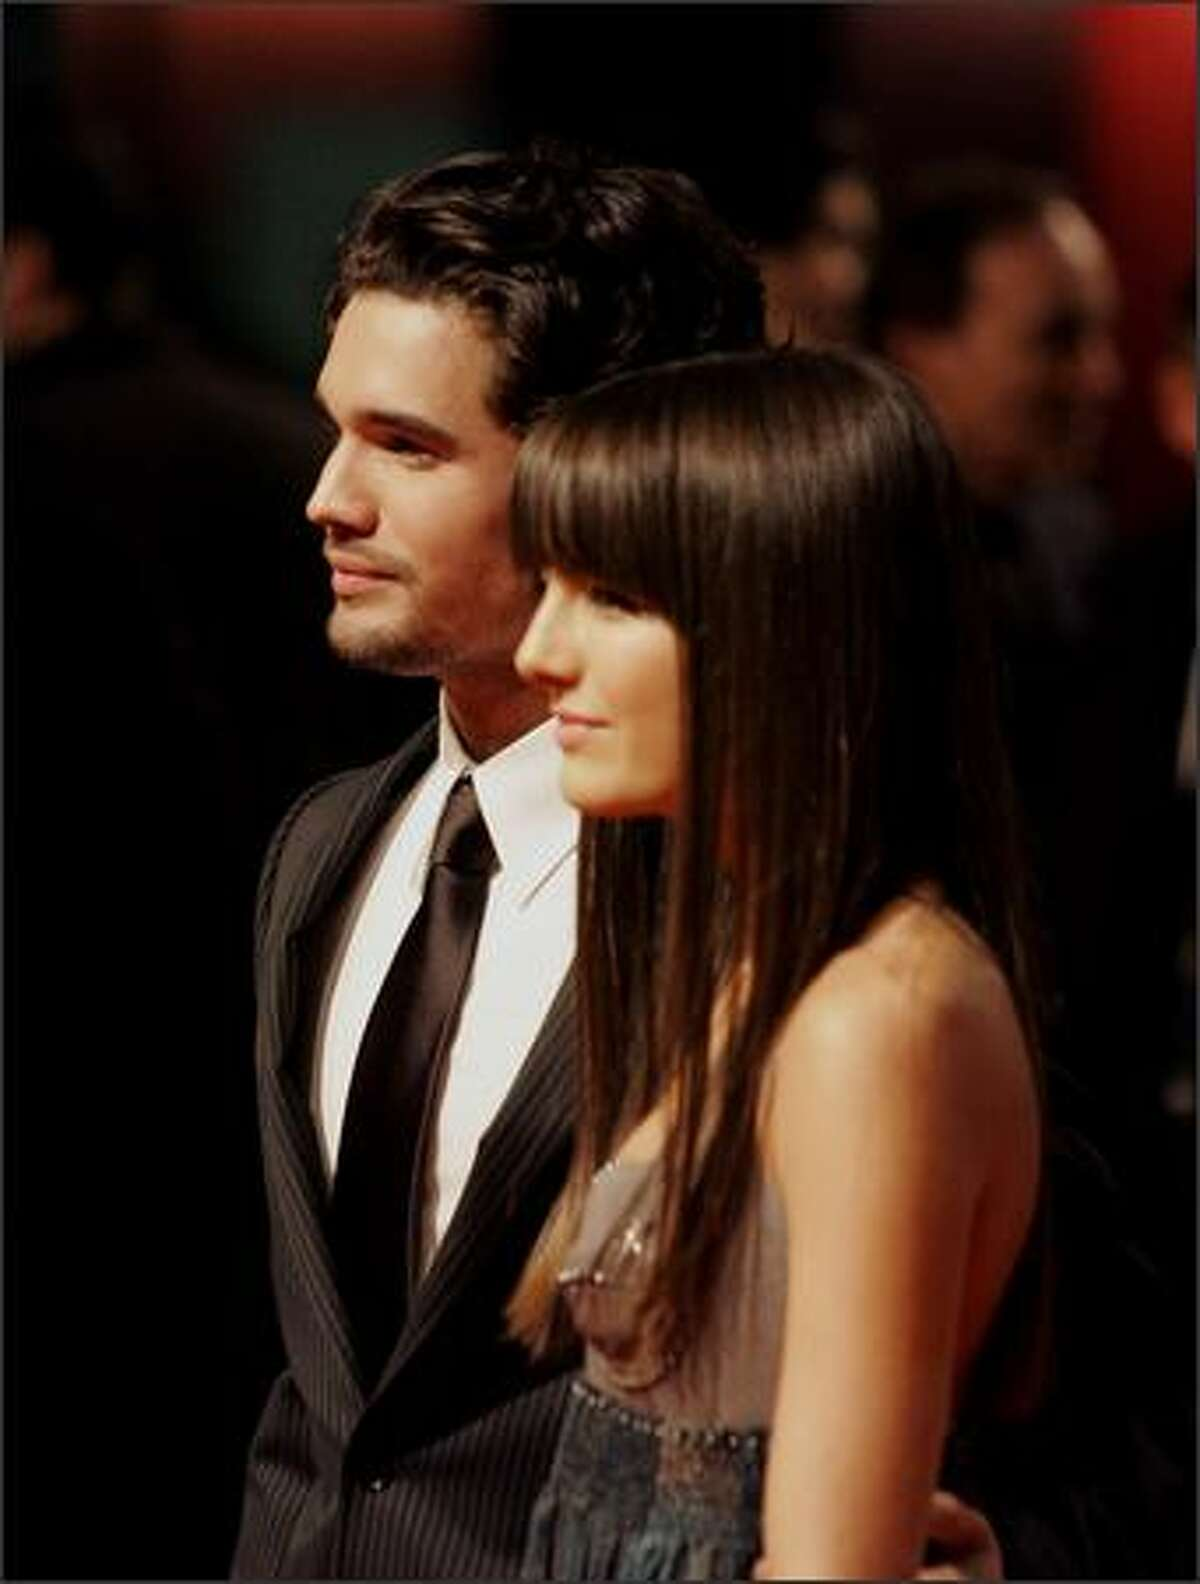 Actor Steven Strait, left, and actress Camilla Belle, right, pose prior to their premiere of the movie